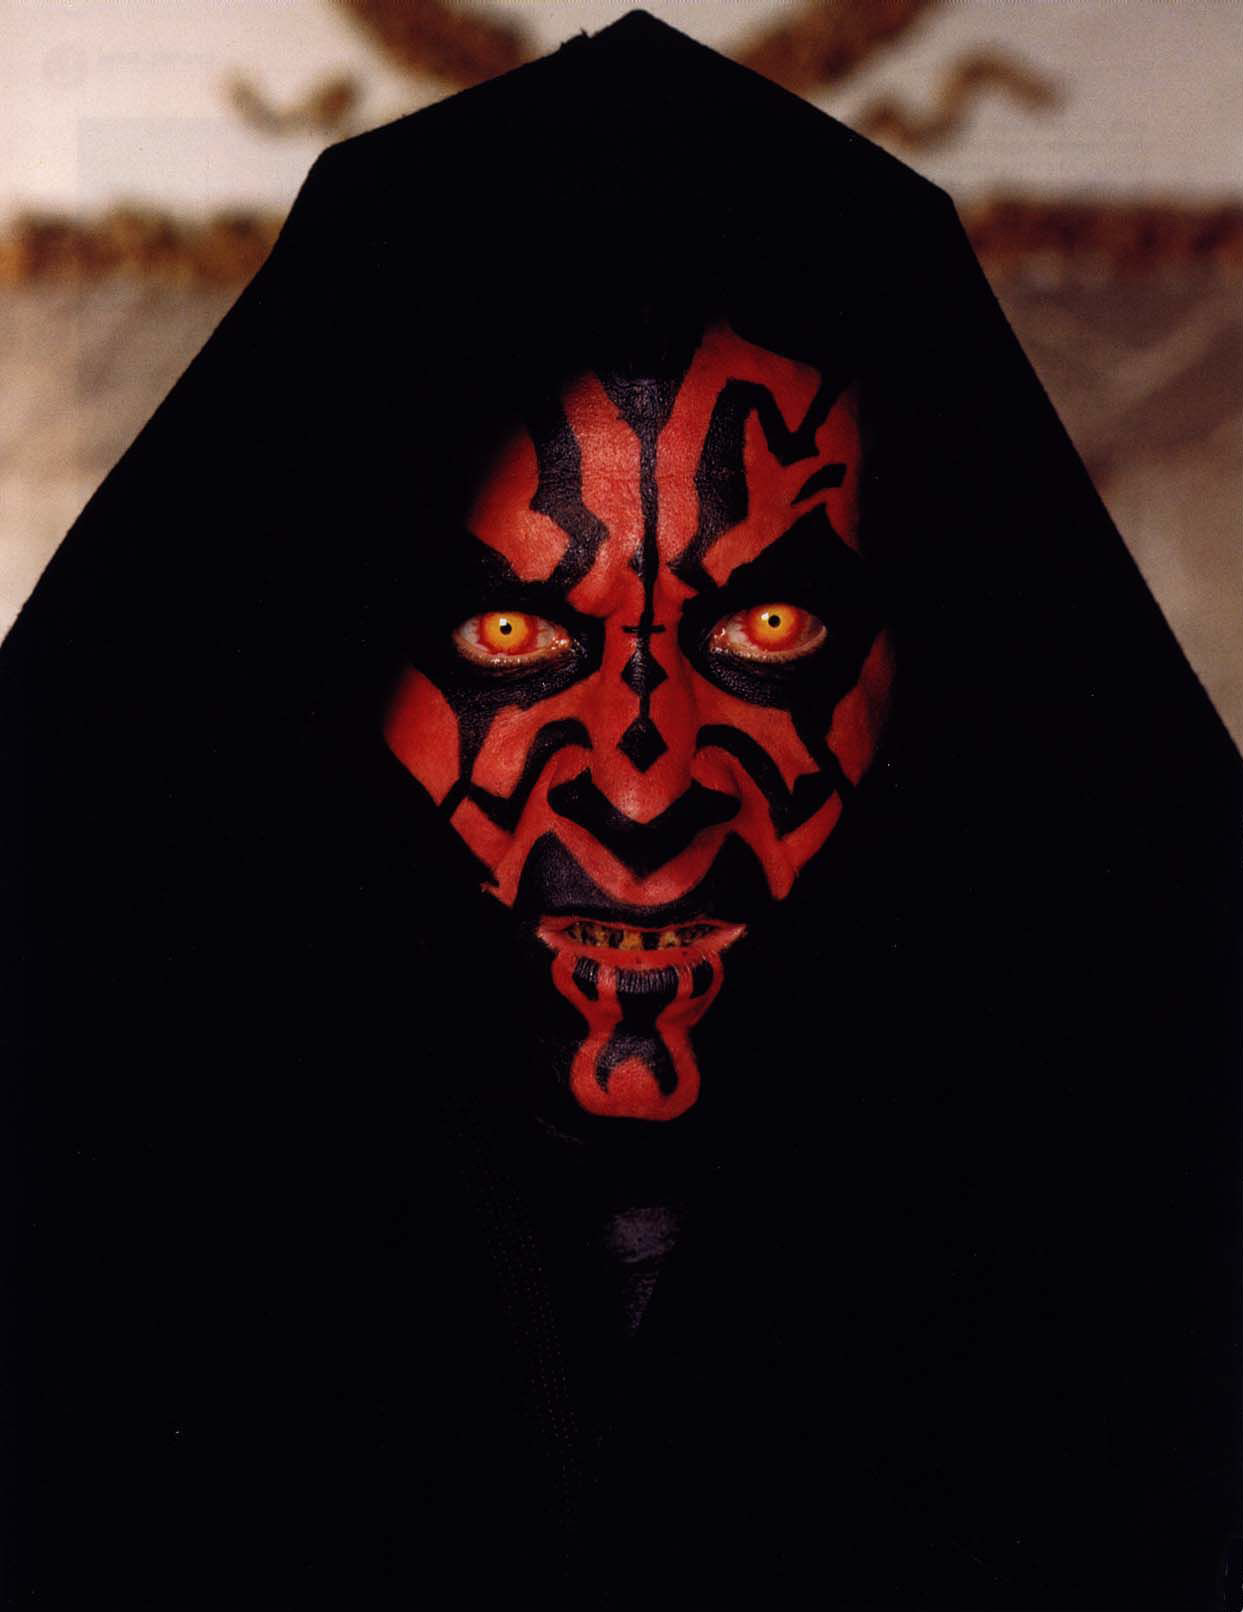 Darth Maul | Jedipedia | FANDOM powered by Wikia